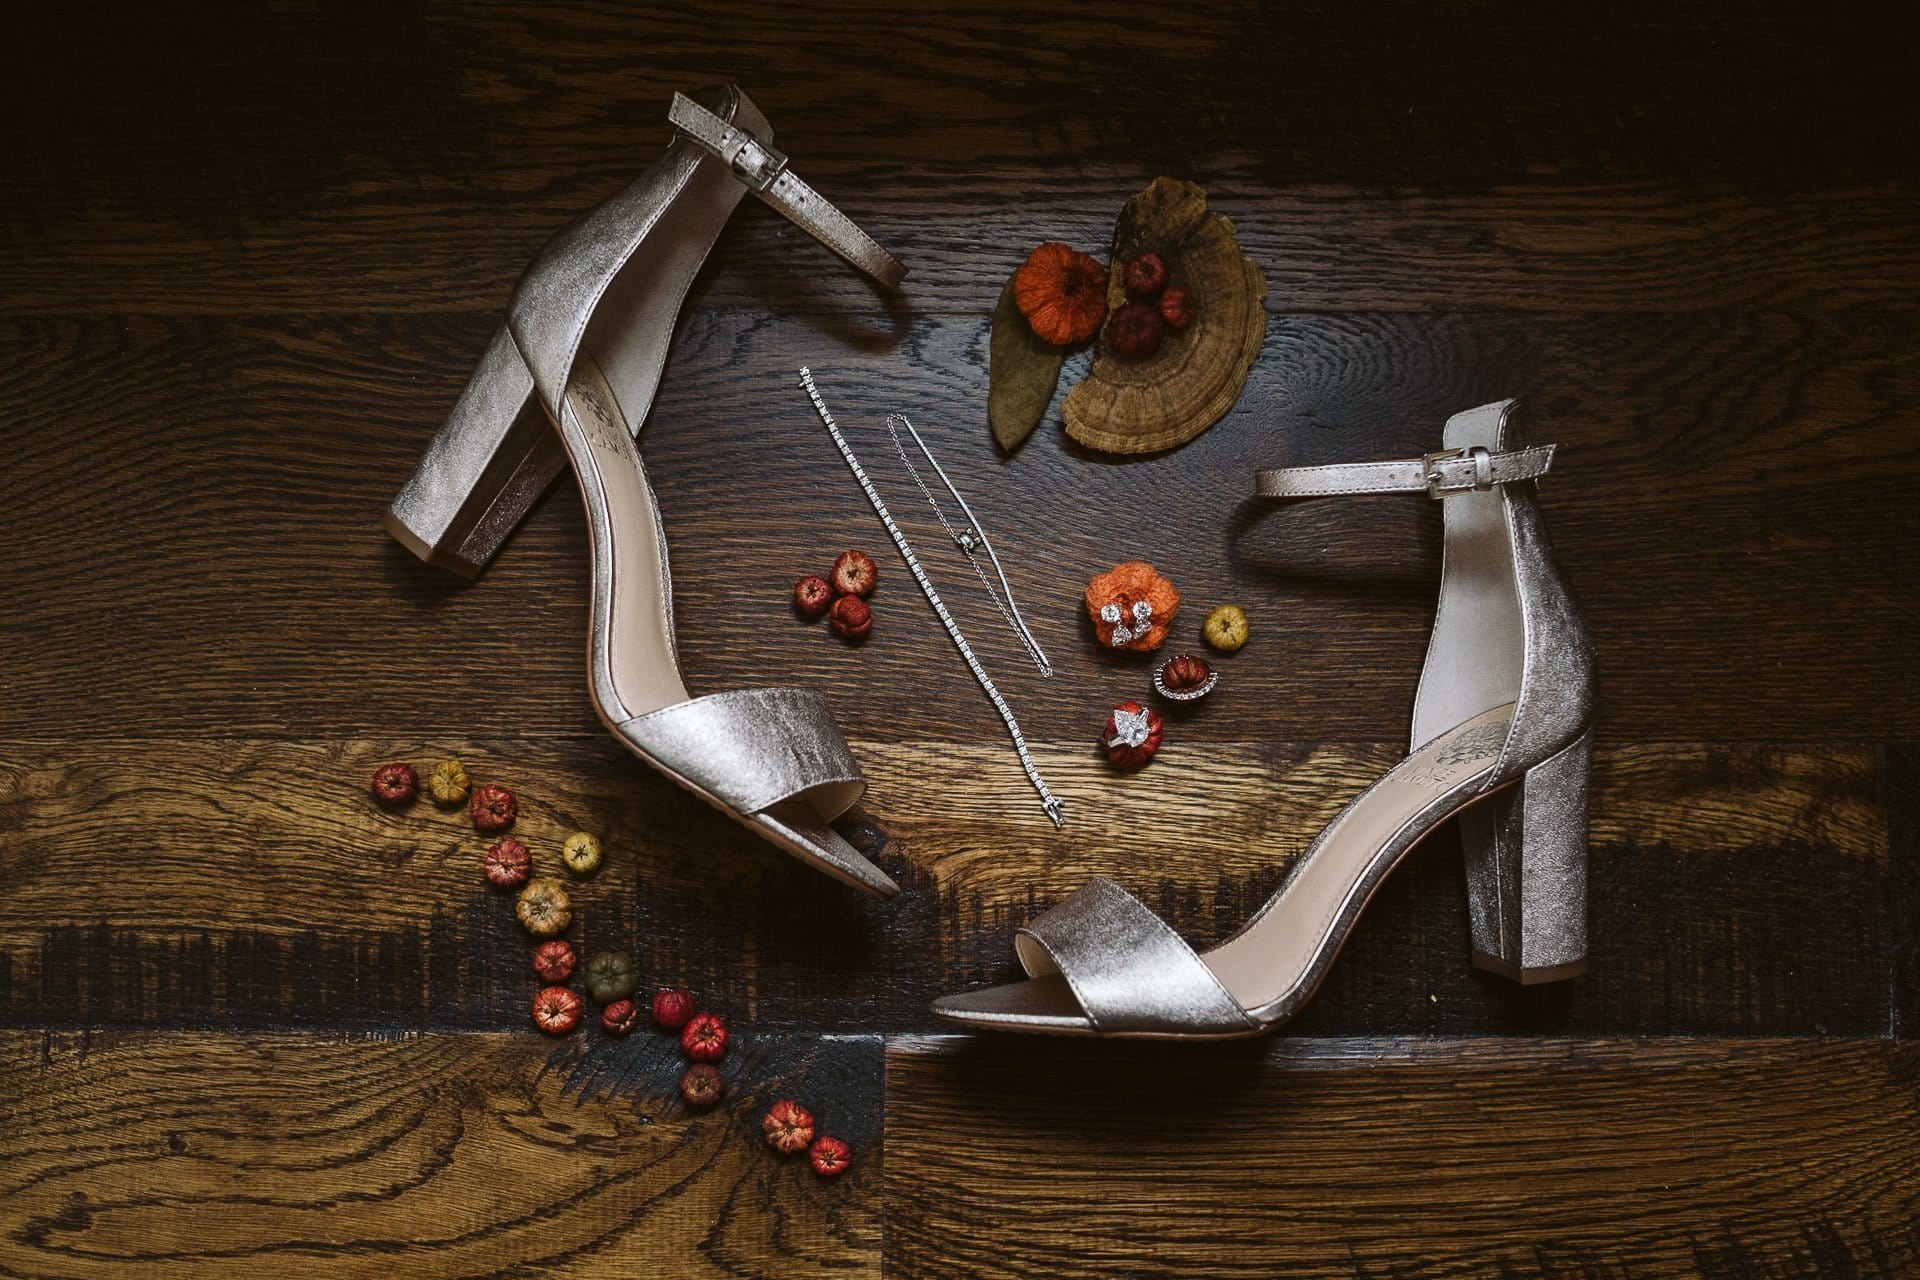 Silver high heeled sandals for bride's wedding shoes, wedding detail photo